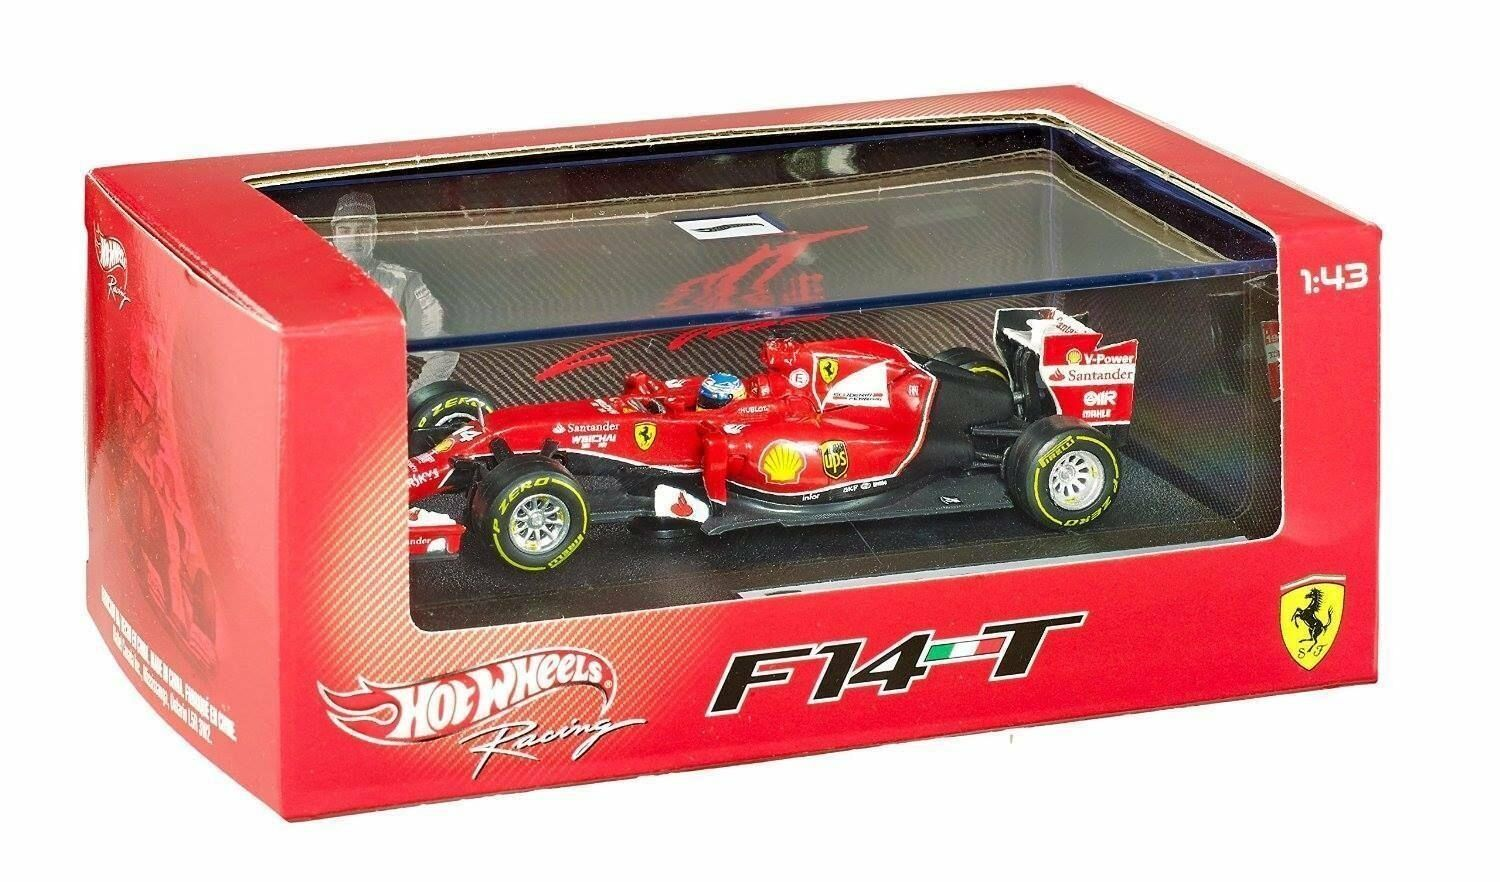 Hot wheels - 1 43 ferrari f14 t f. alonso arte bly69